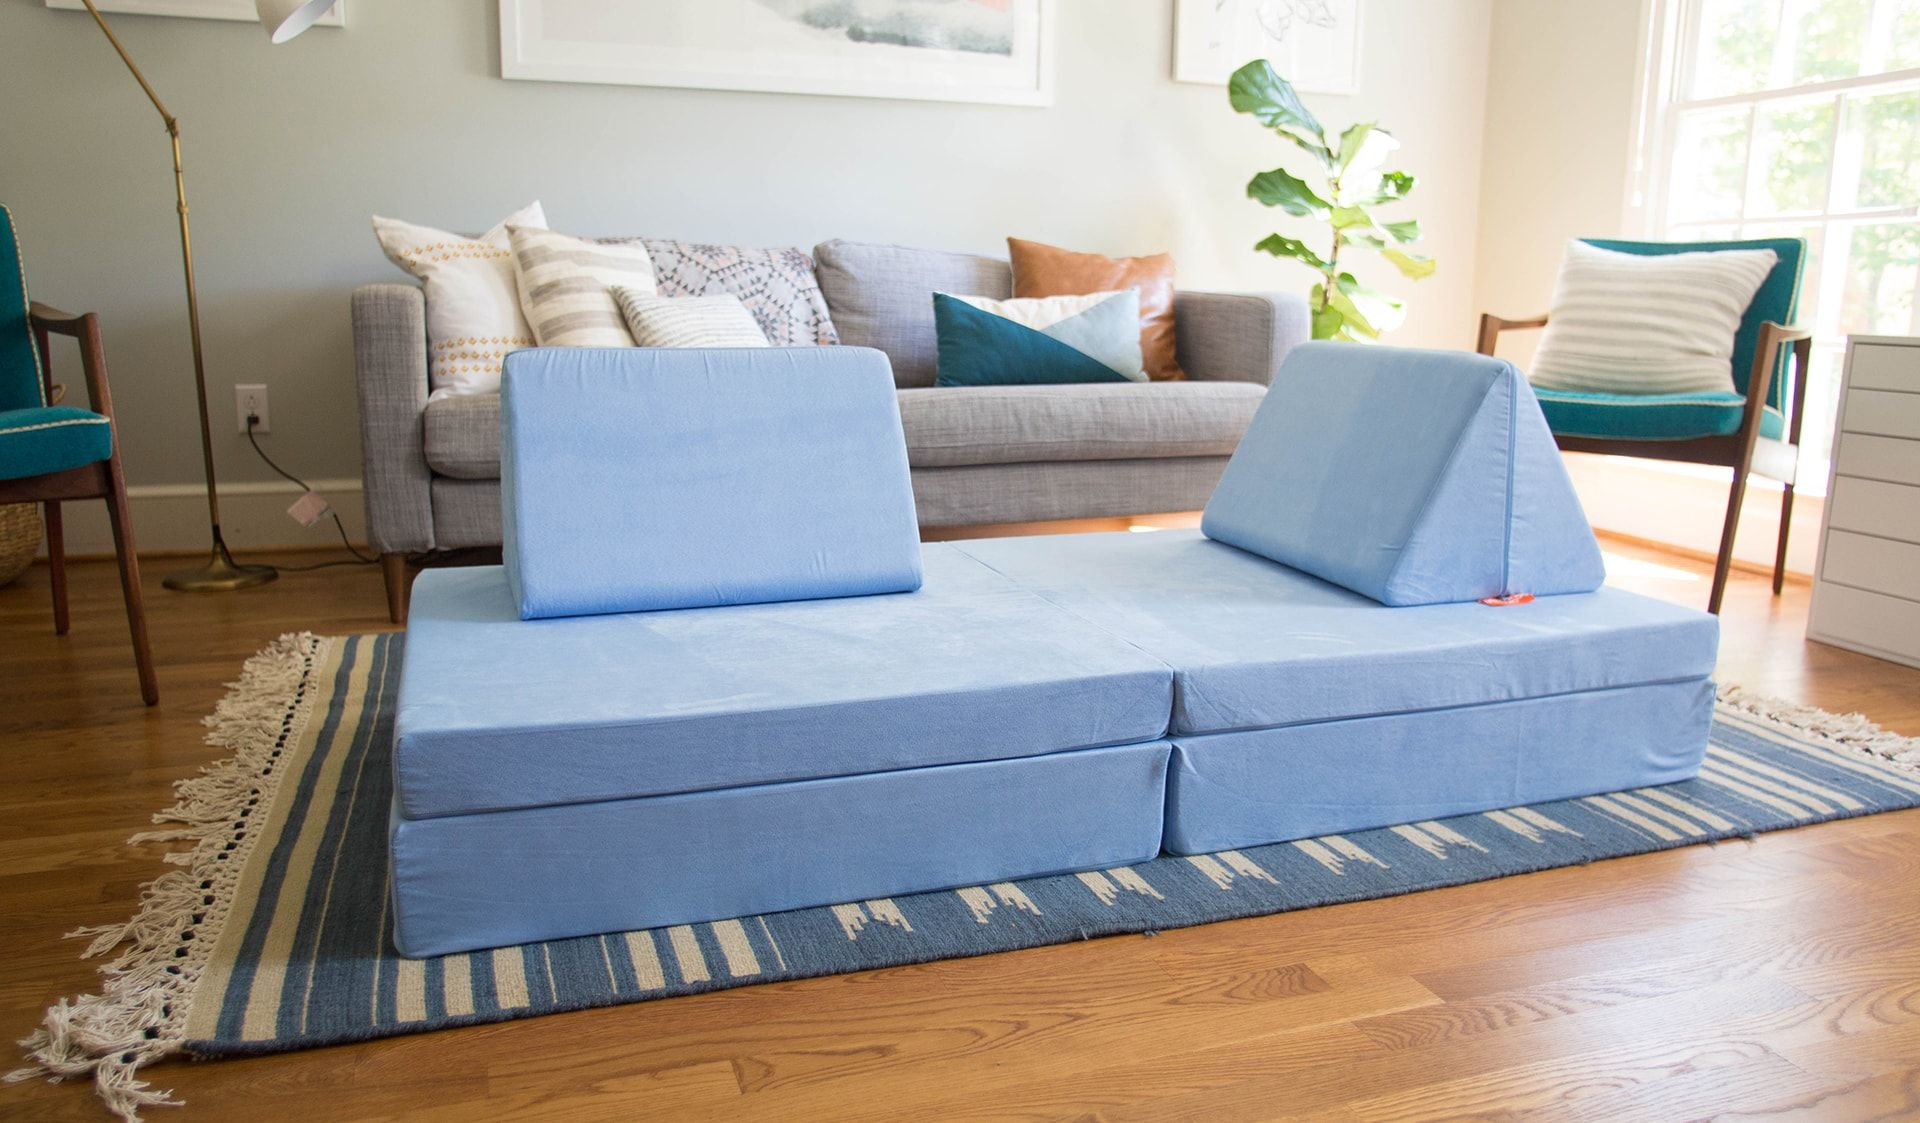 The   Spare bed, Outdoor sectional sofa, Kids room